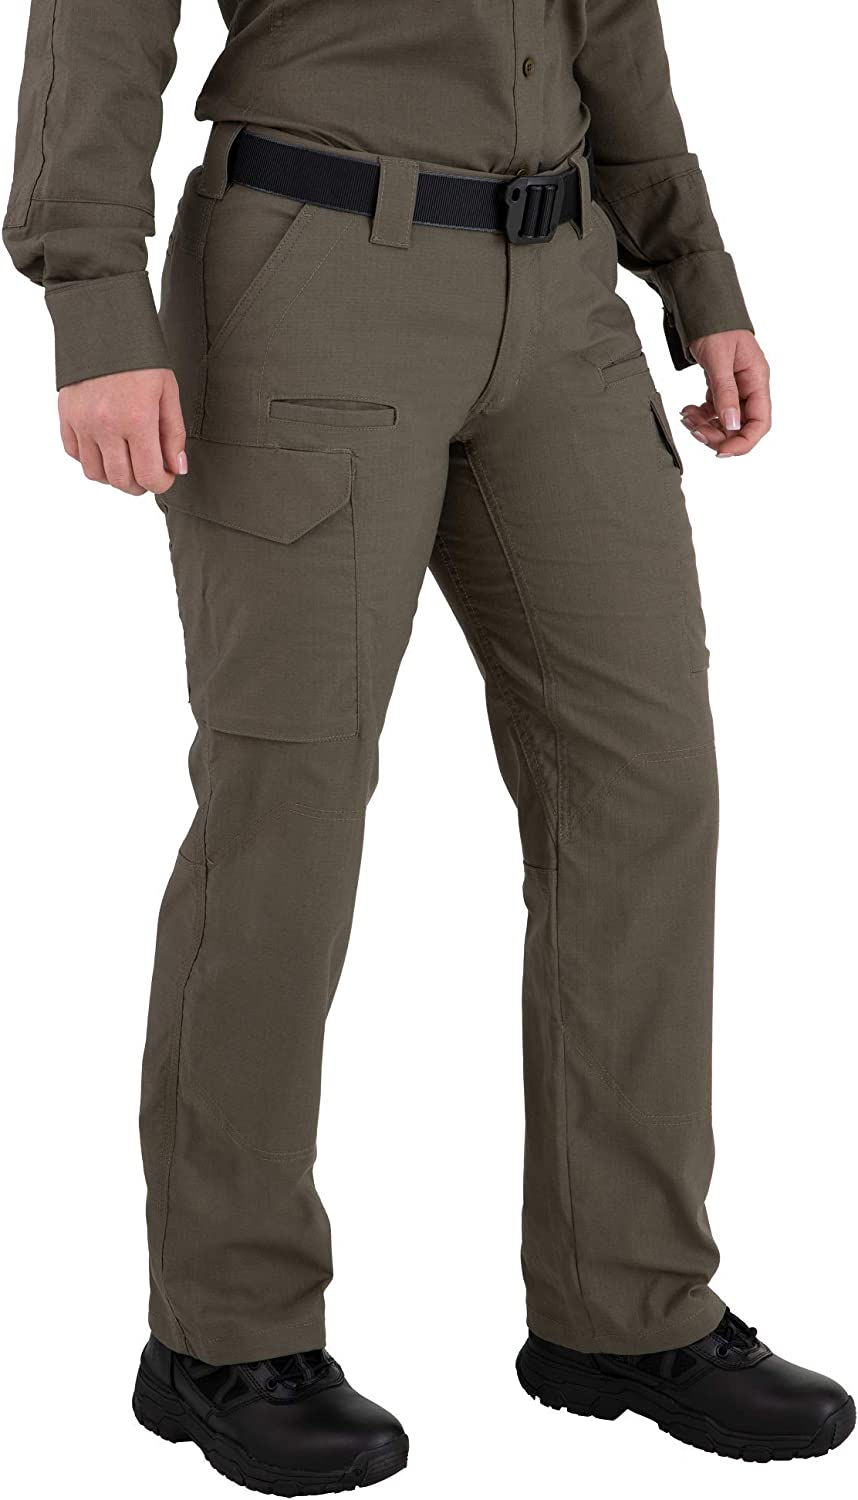 First Tactical V2 Women/'s Tactical Pant Micro Ripstop Fabric with Teflon Shield Stain Repellent